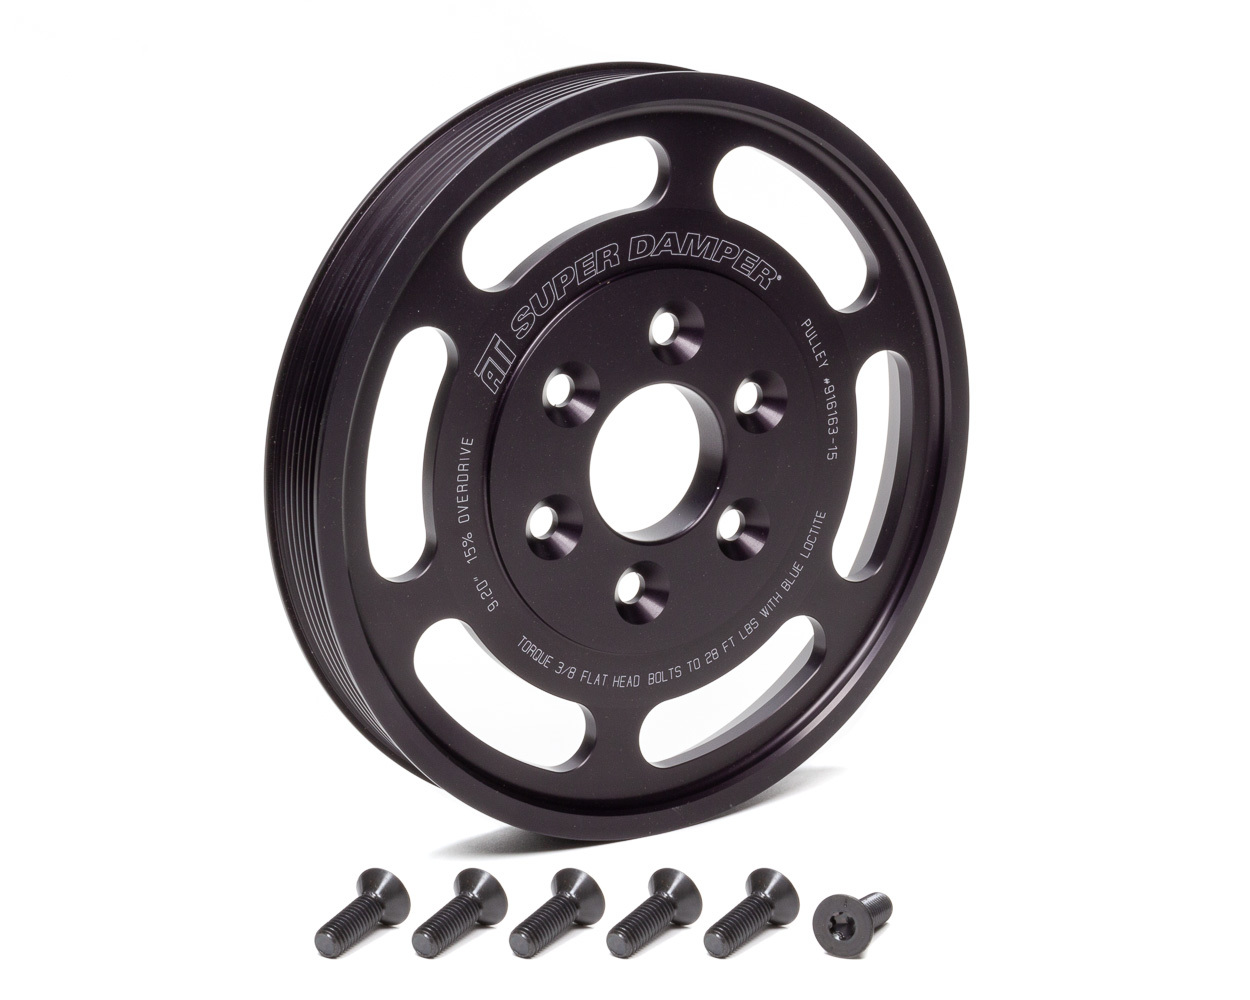 Ati Performance Supercharger Pulley 8.597 Dia. 8-Groove